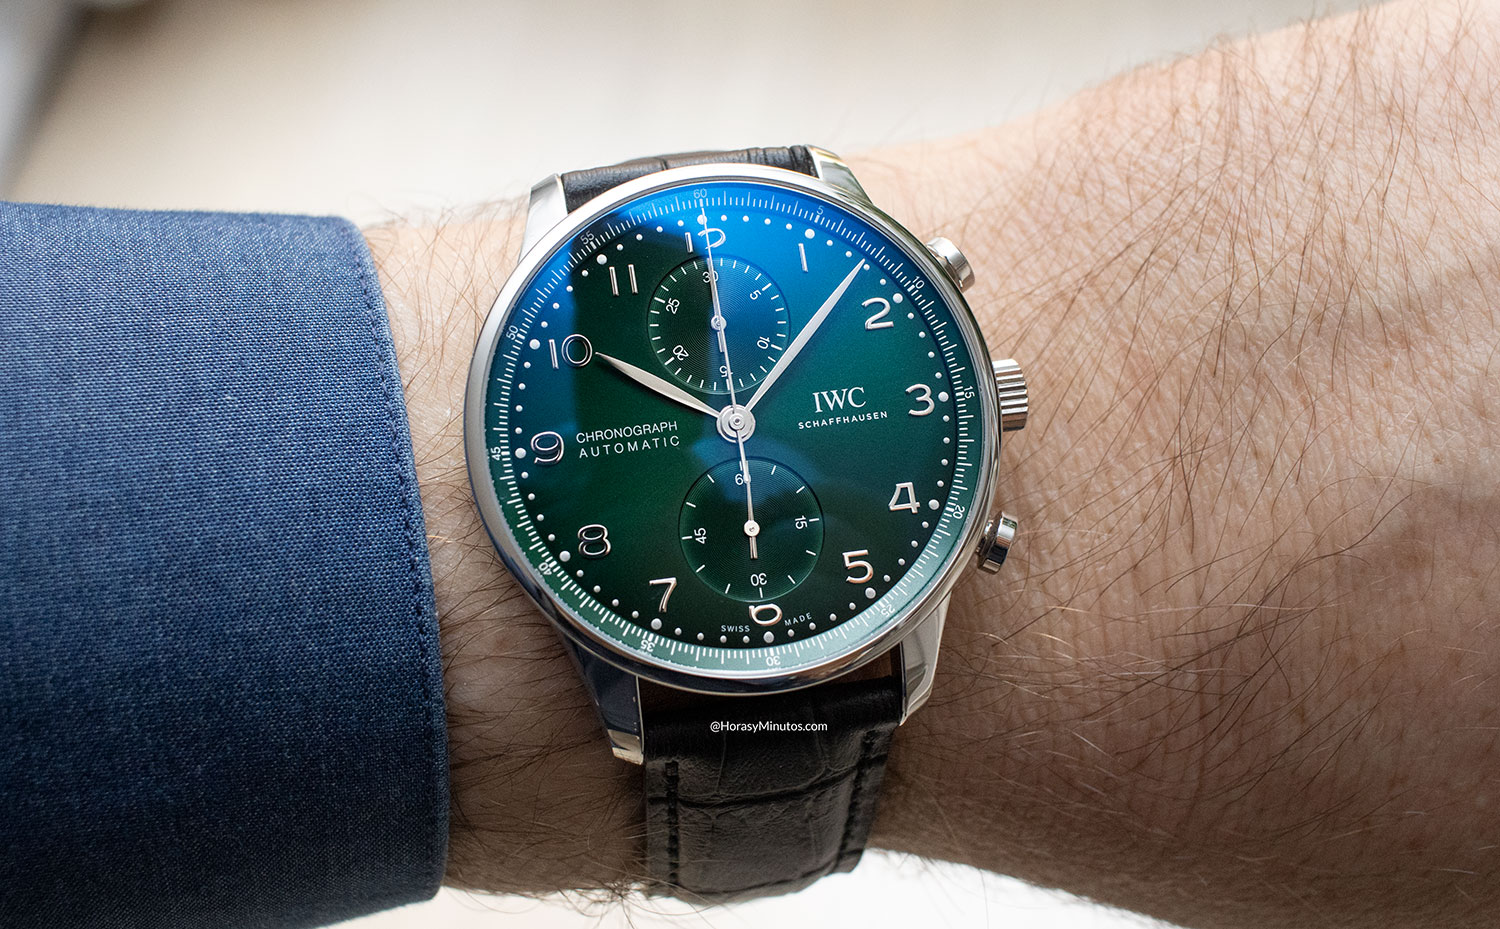 Frontal del IWC Portugieser Chronograph verde